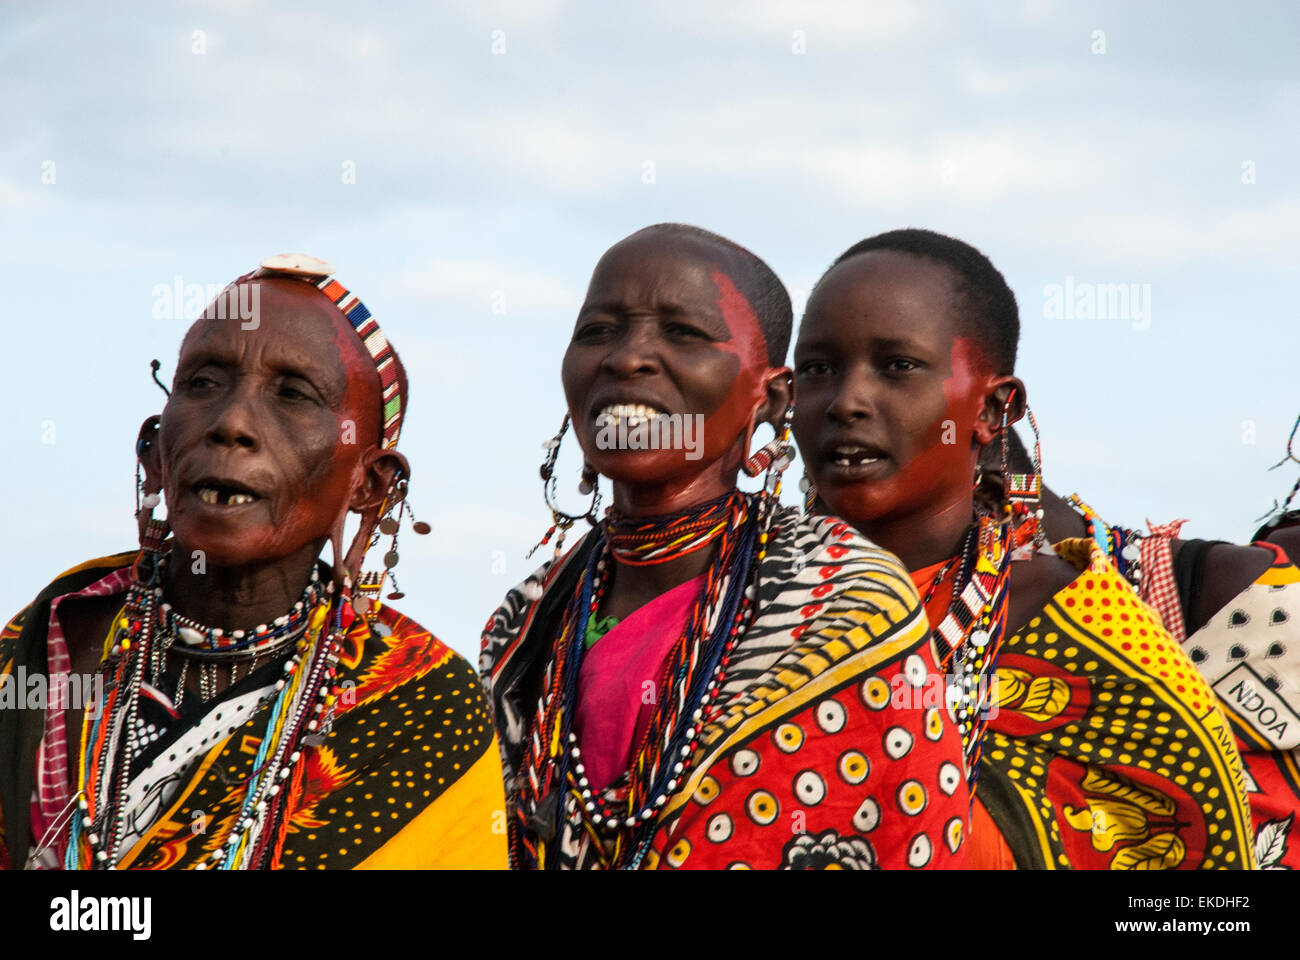 Three Masai women, missing teeth, one old, singing in a village near the Masai Mara, Kenya, East Africa. Stock Photo